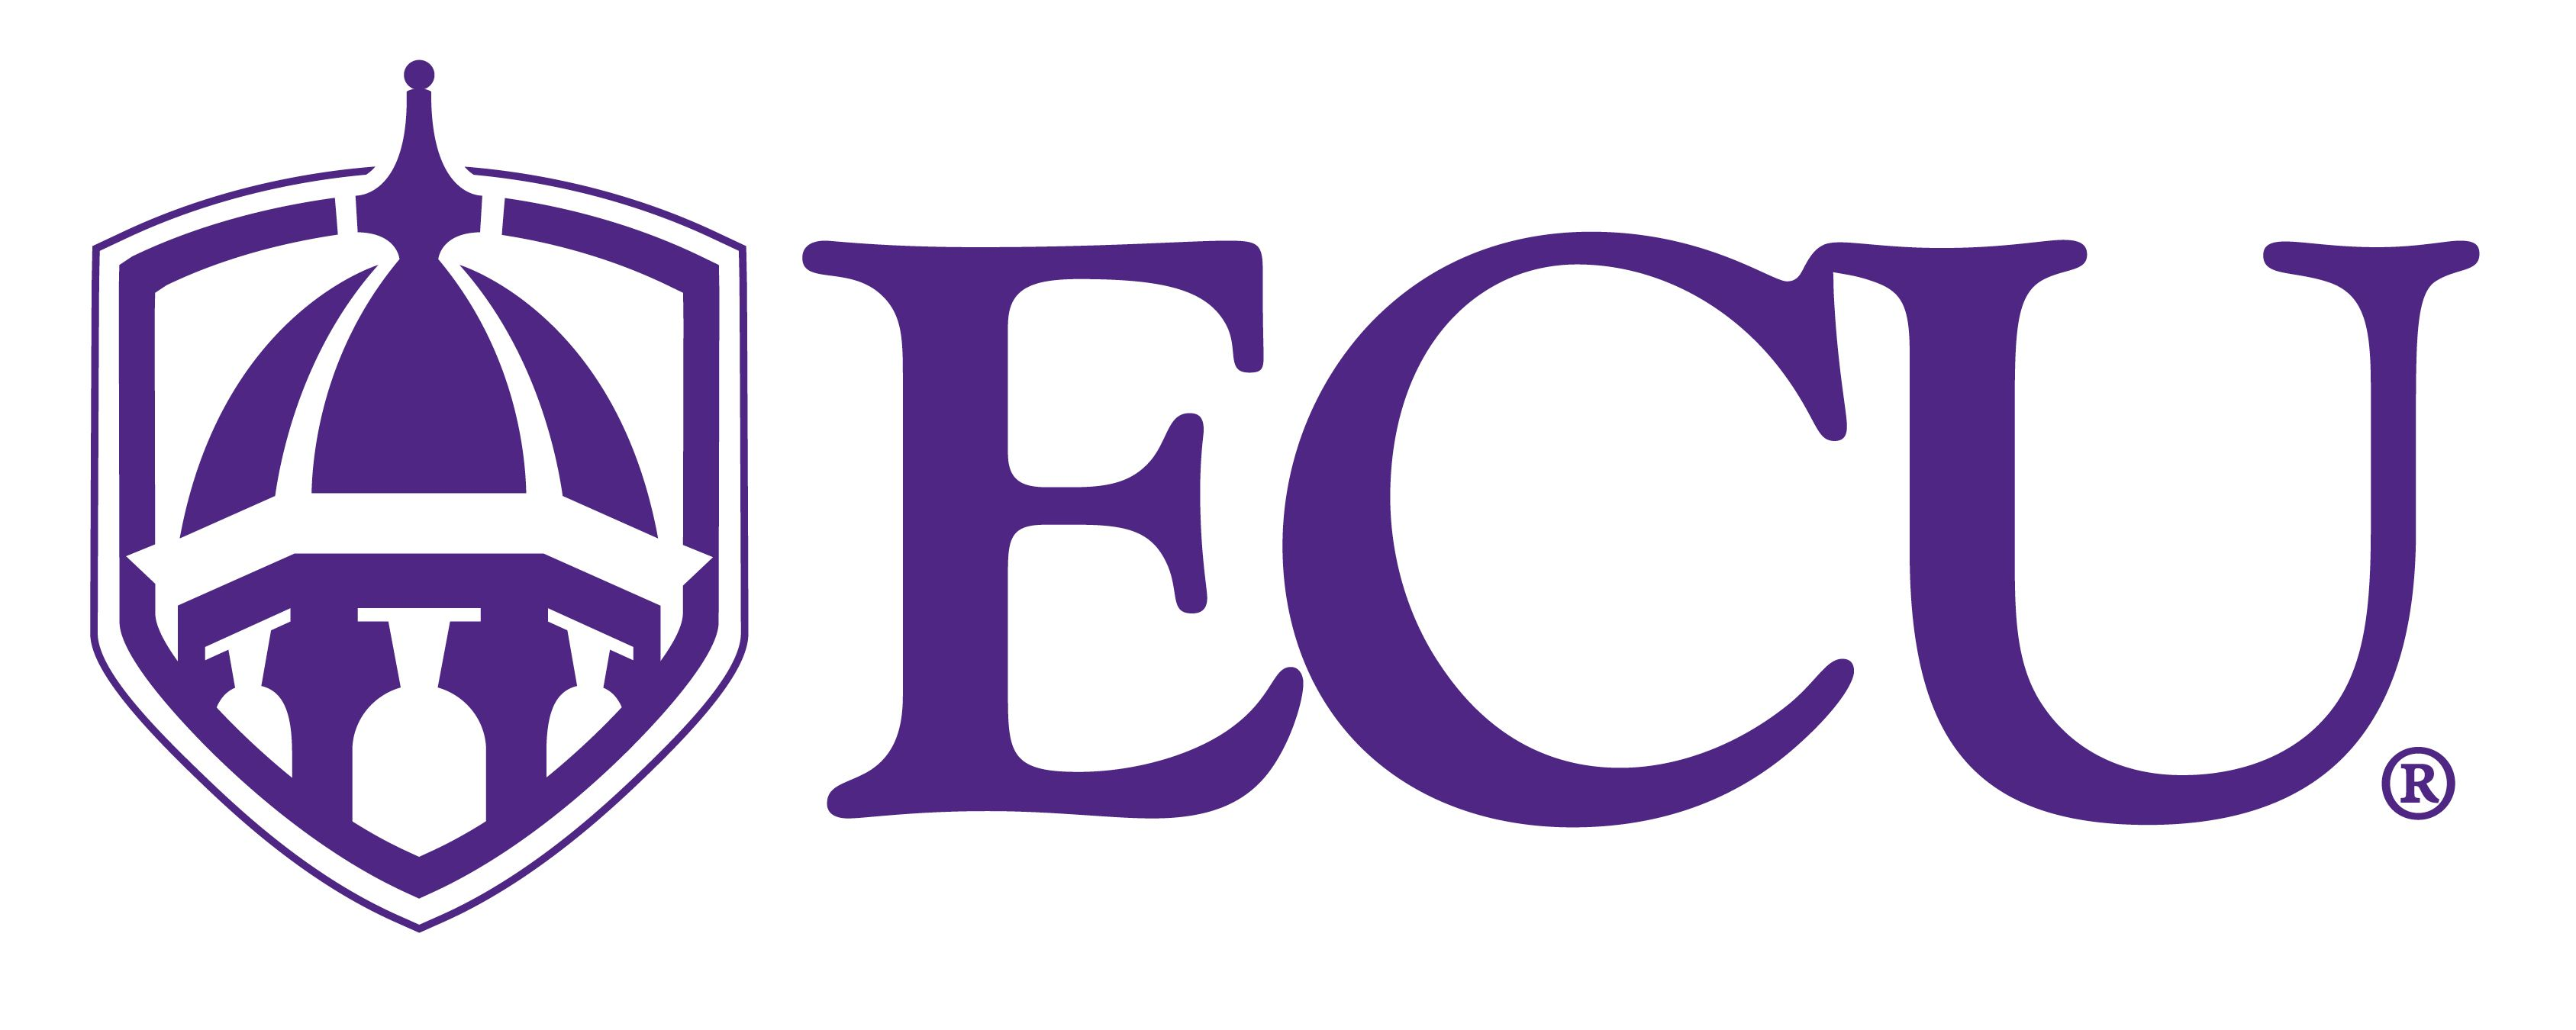 East Carolina University Logo Colleges in North Carolina